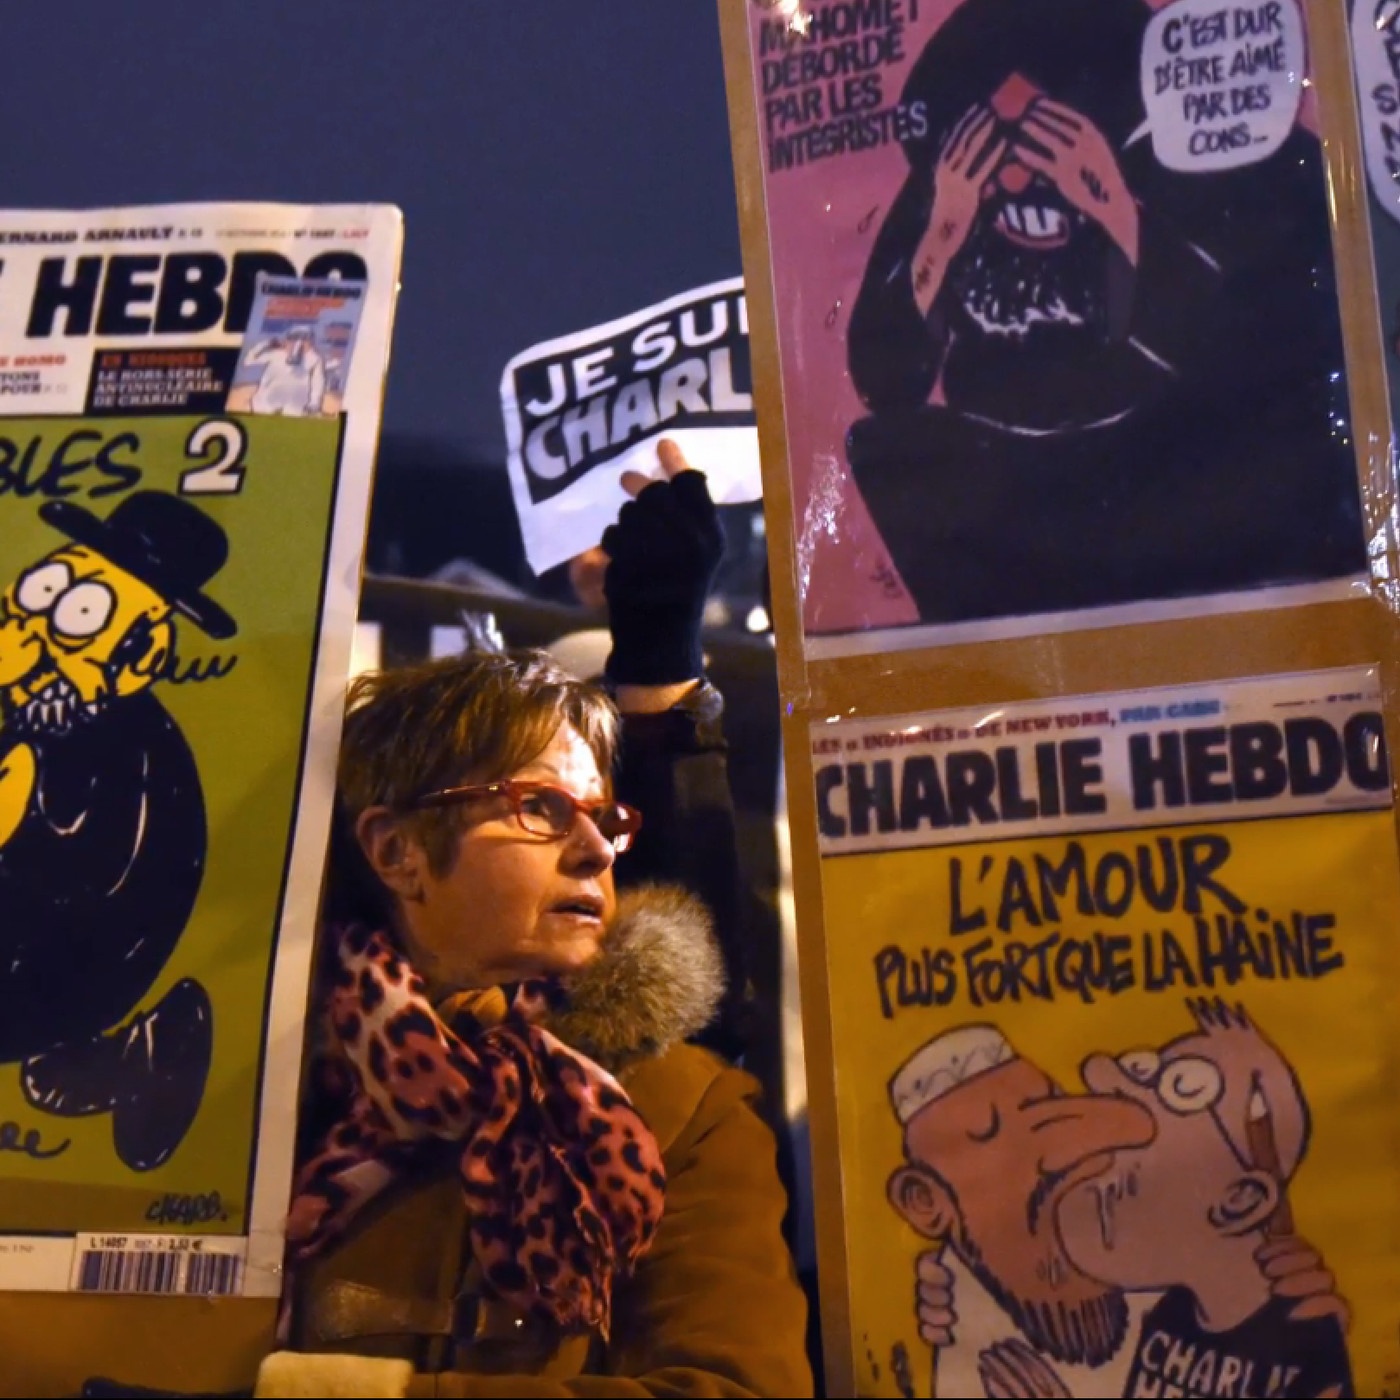 Charlie Hebdo S Most Famous Cartoons Translated And Explained Vox